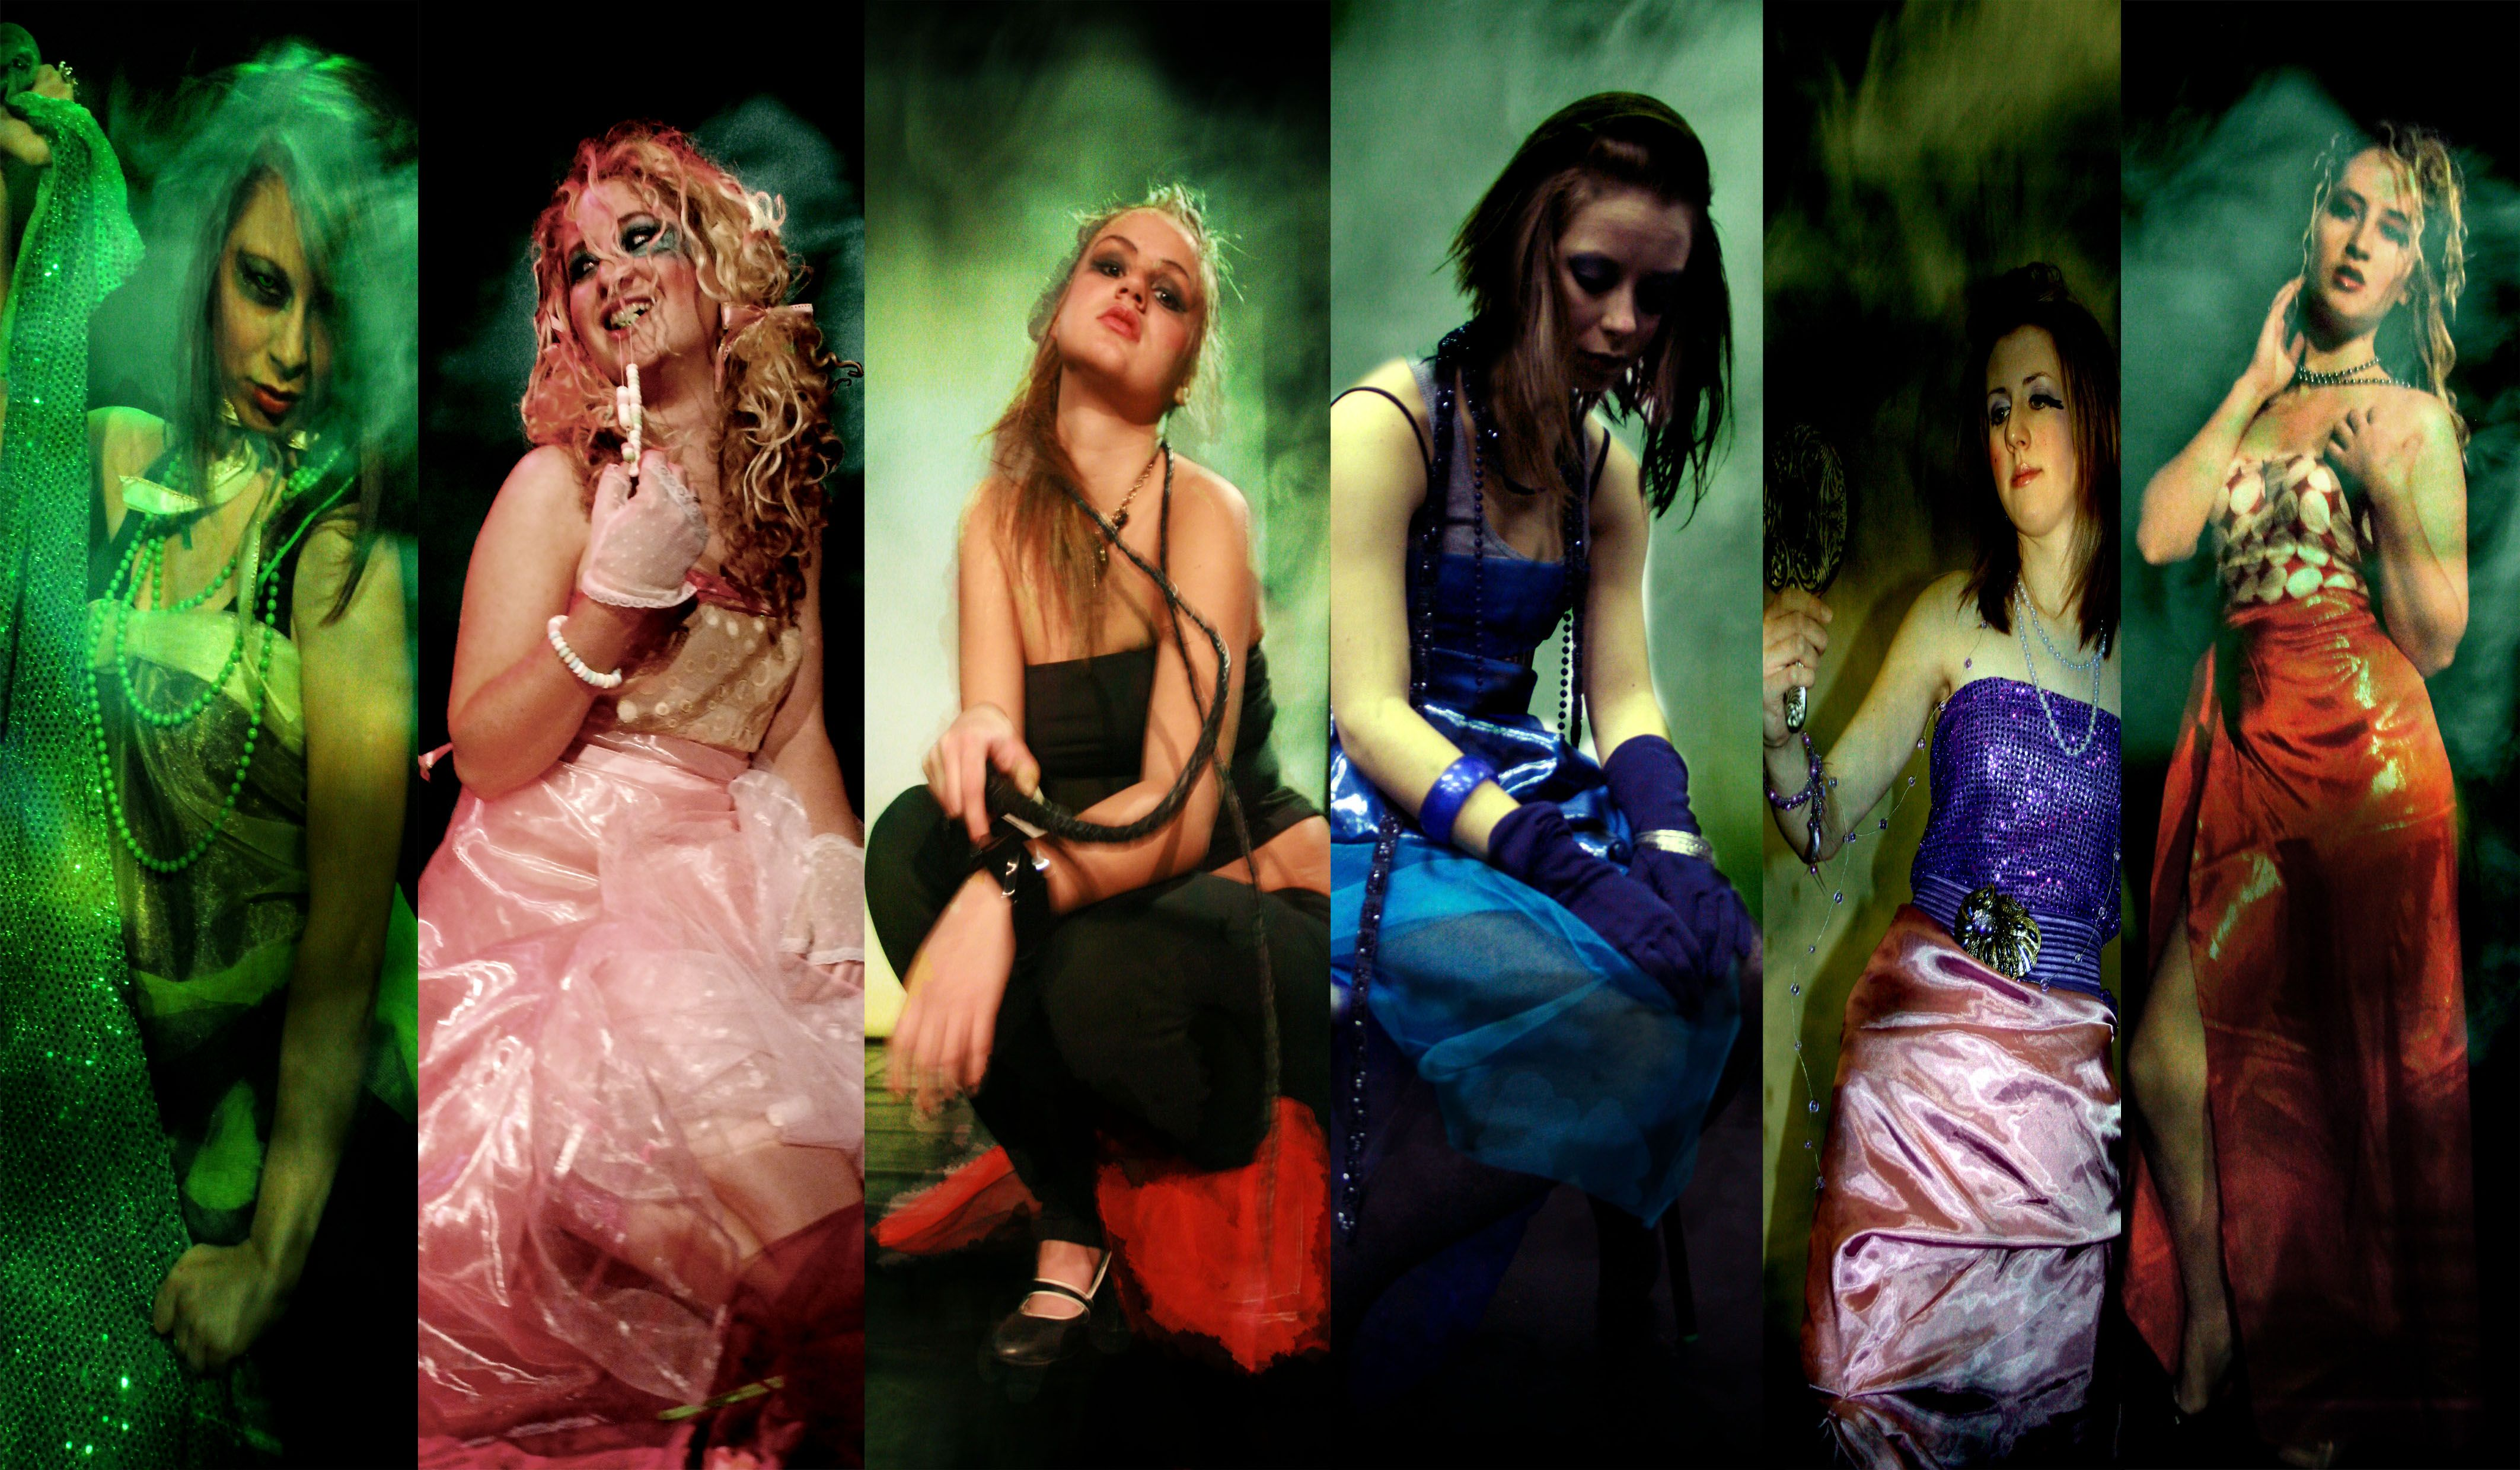 6 Of The 7 Deadly Sins By Bosha On Deviantart 7 Deadly Sins Sins Sloth Photos